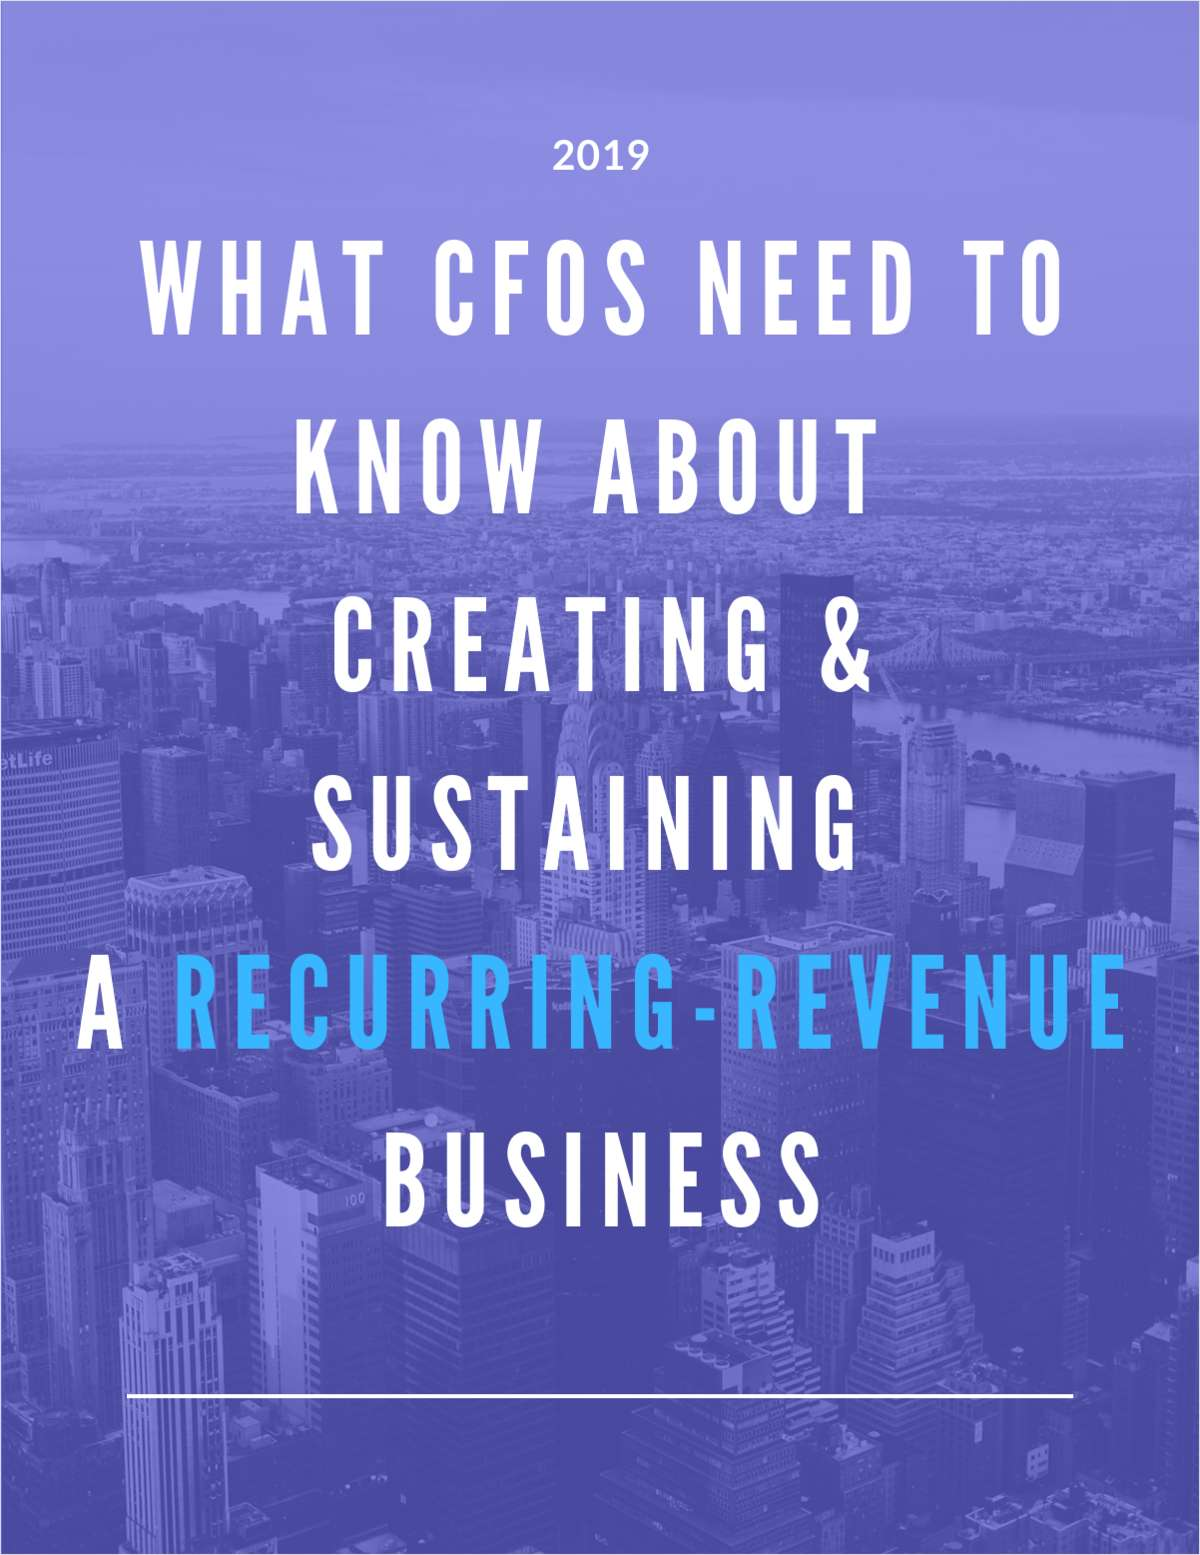 What CFOs Need to Know about Creating and Sustaining a Recurring-Revenue Business